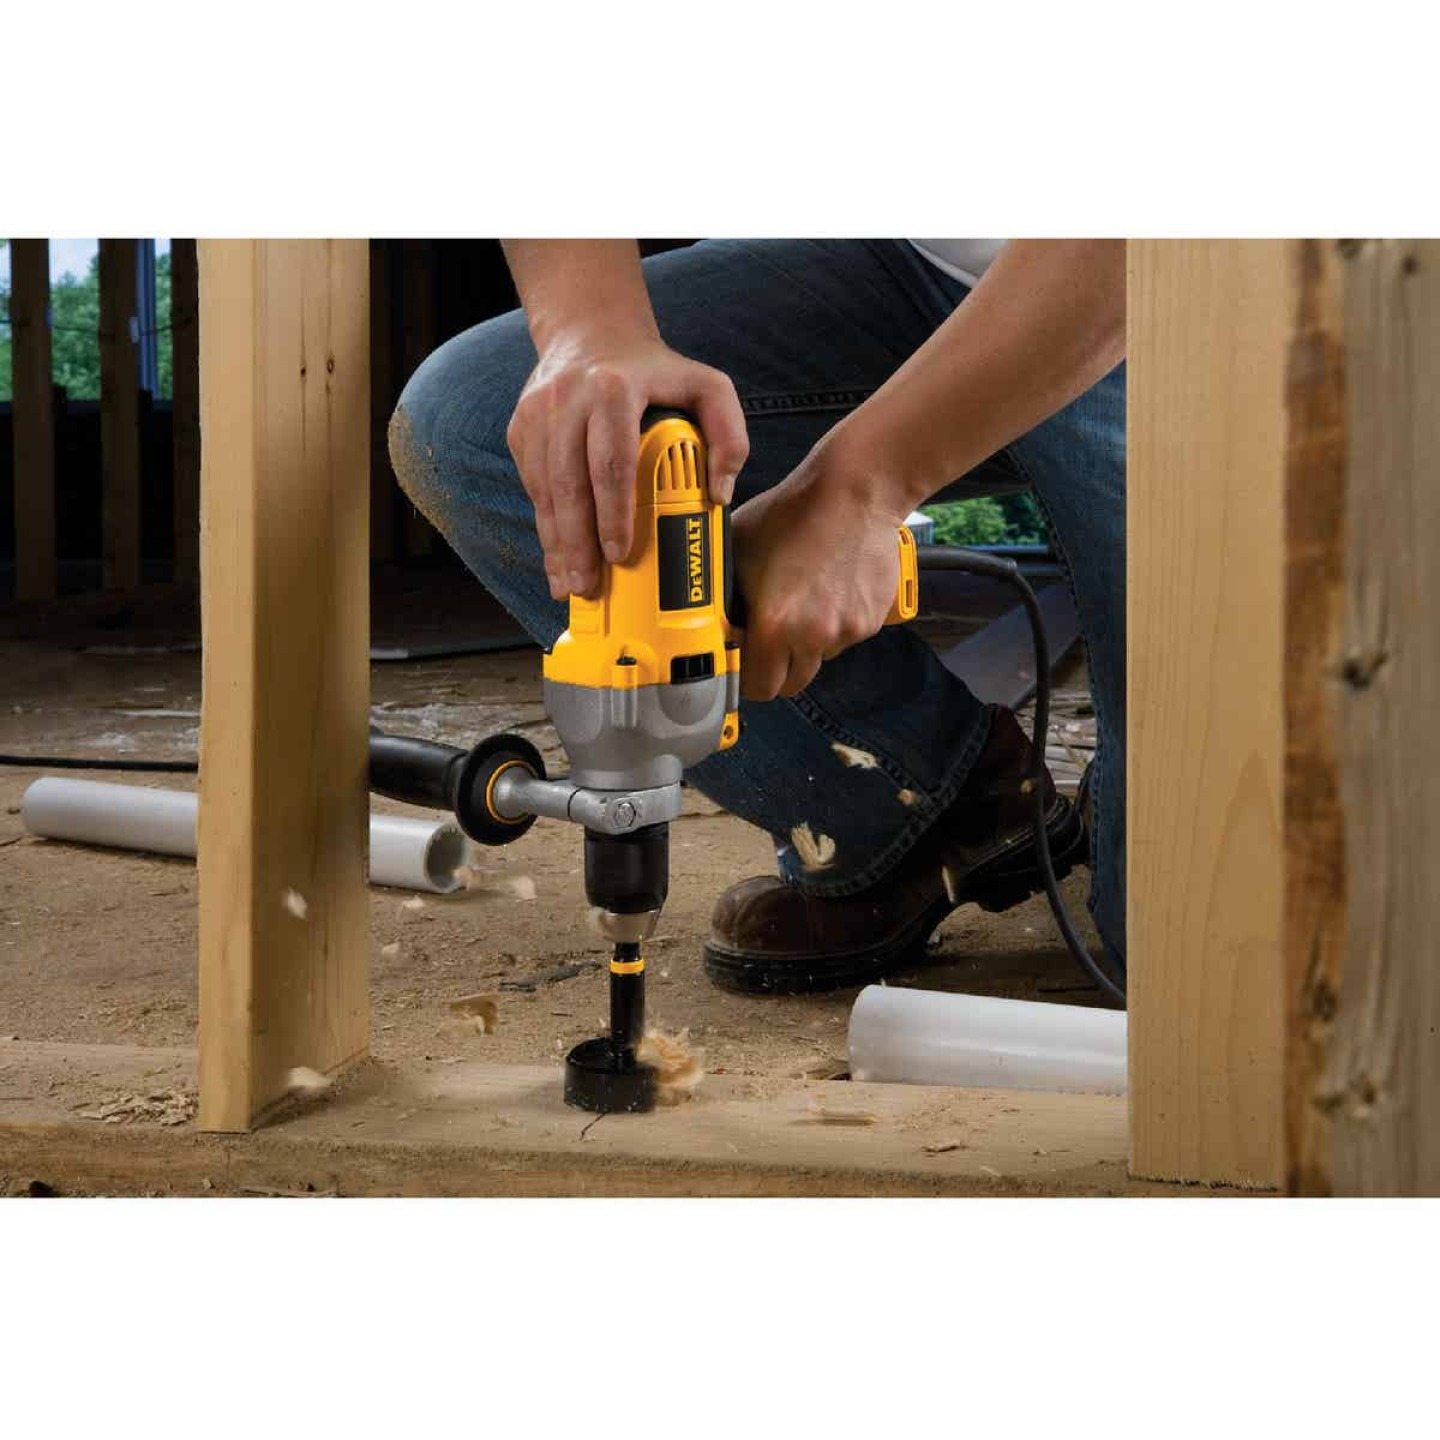 DeWalt 1/2 In. 10-Amp Keyless Electric Drill with Mid-Handle Grip Image 3